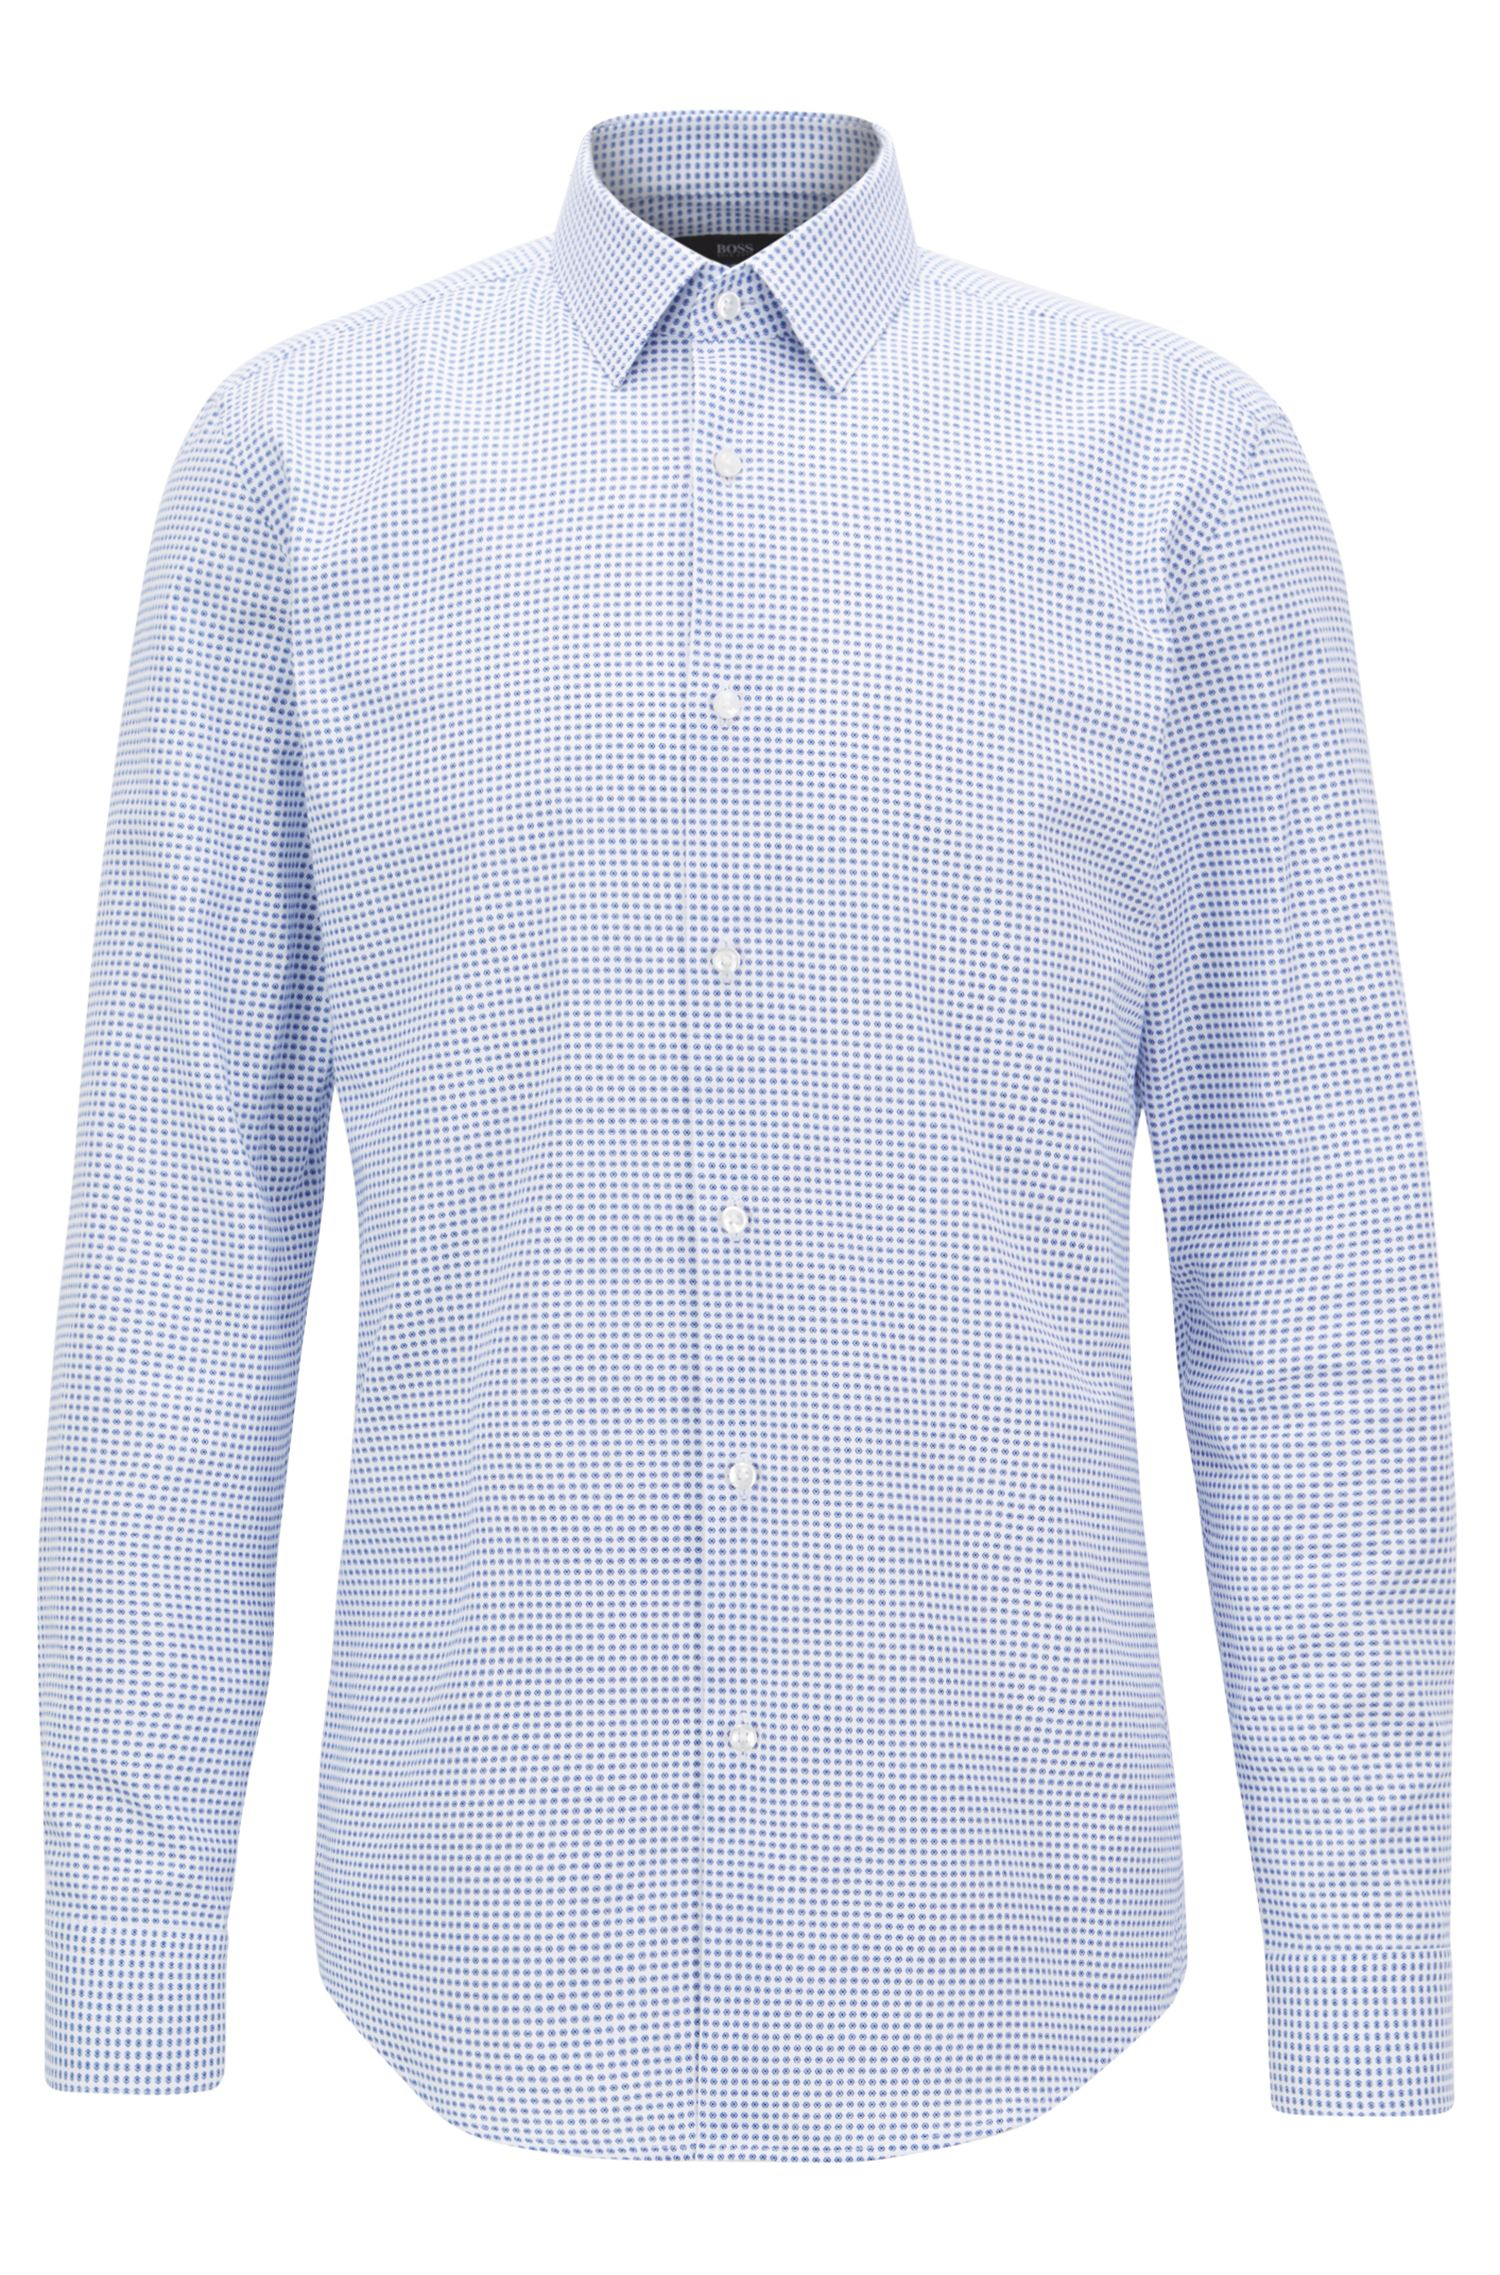 Slim-fit shirt in geometric-print Italian-made cotton